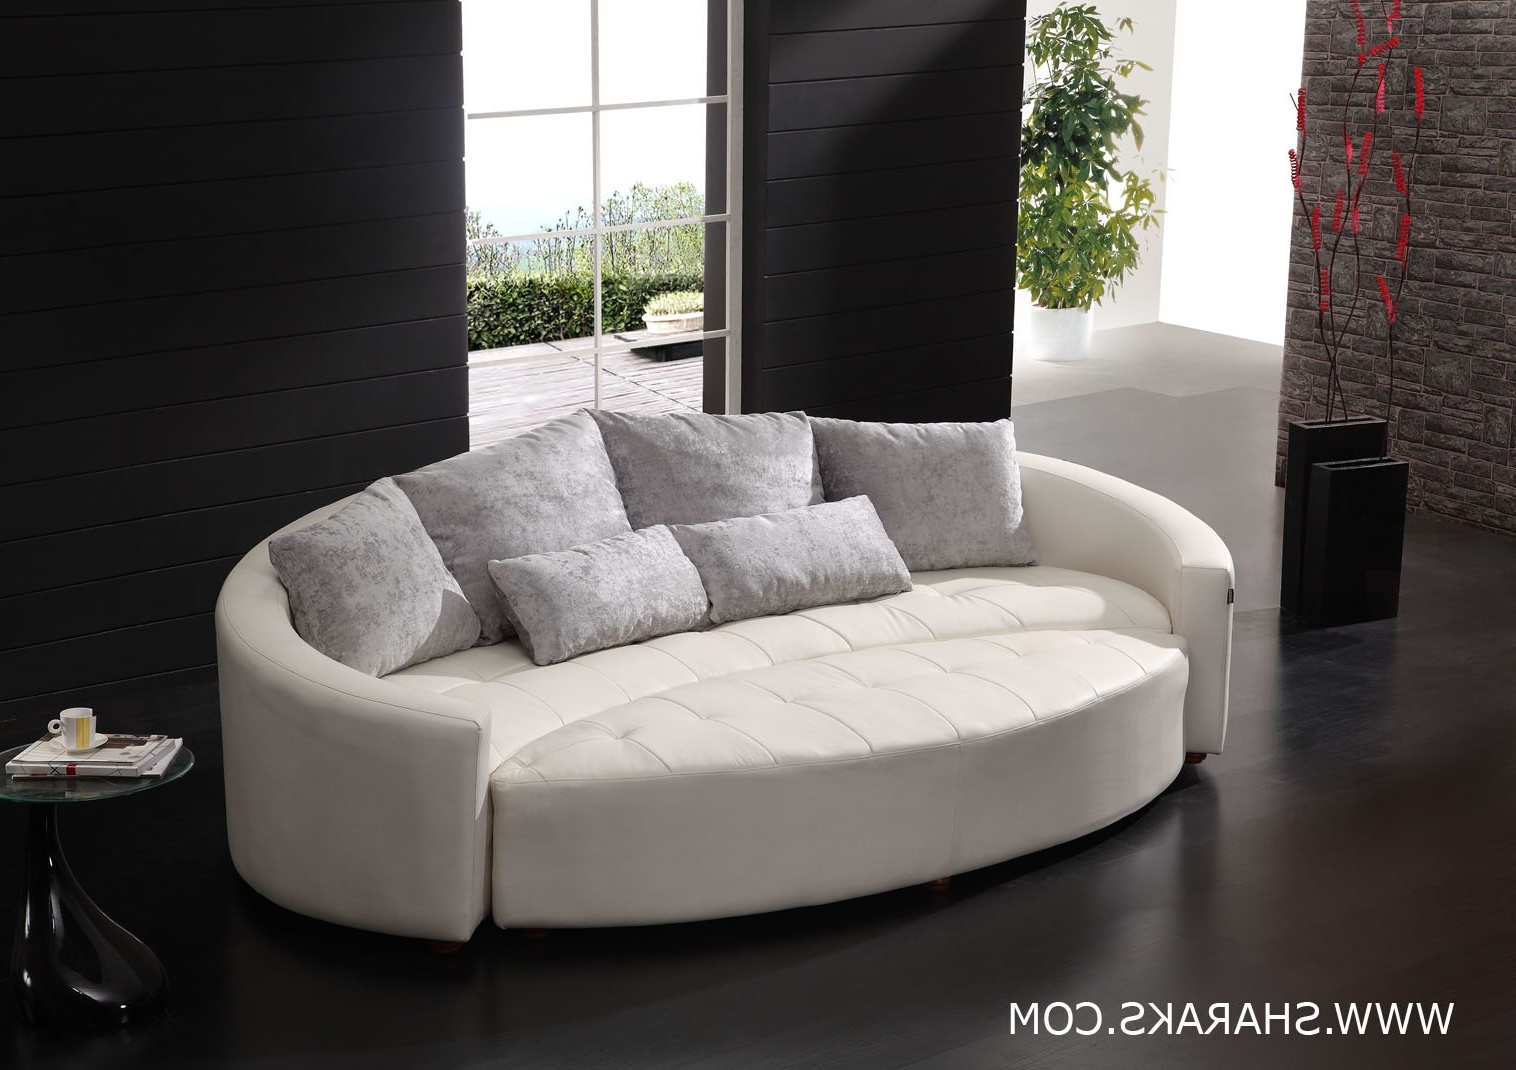 Awesome Round Lounge Couch 26 About Remodel Modern Sofa Regarding Preferred Round Sofas (View 4 of 15)